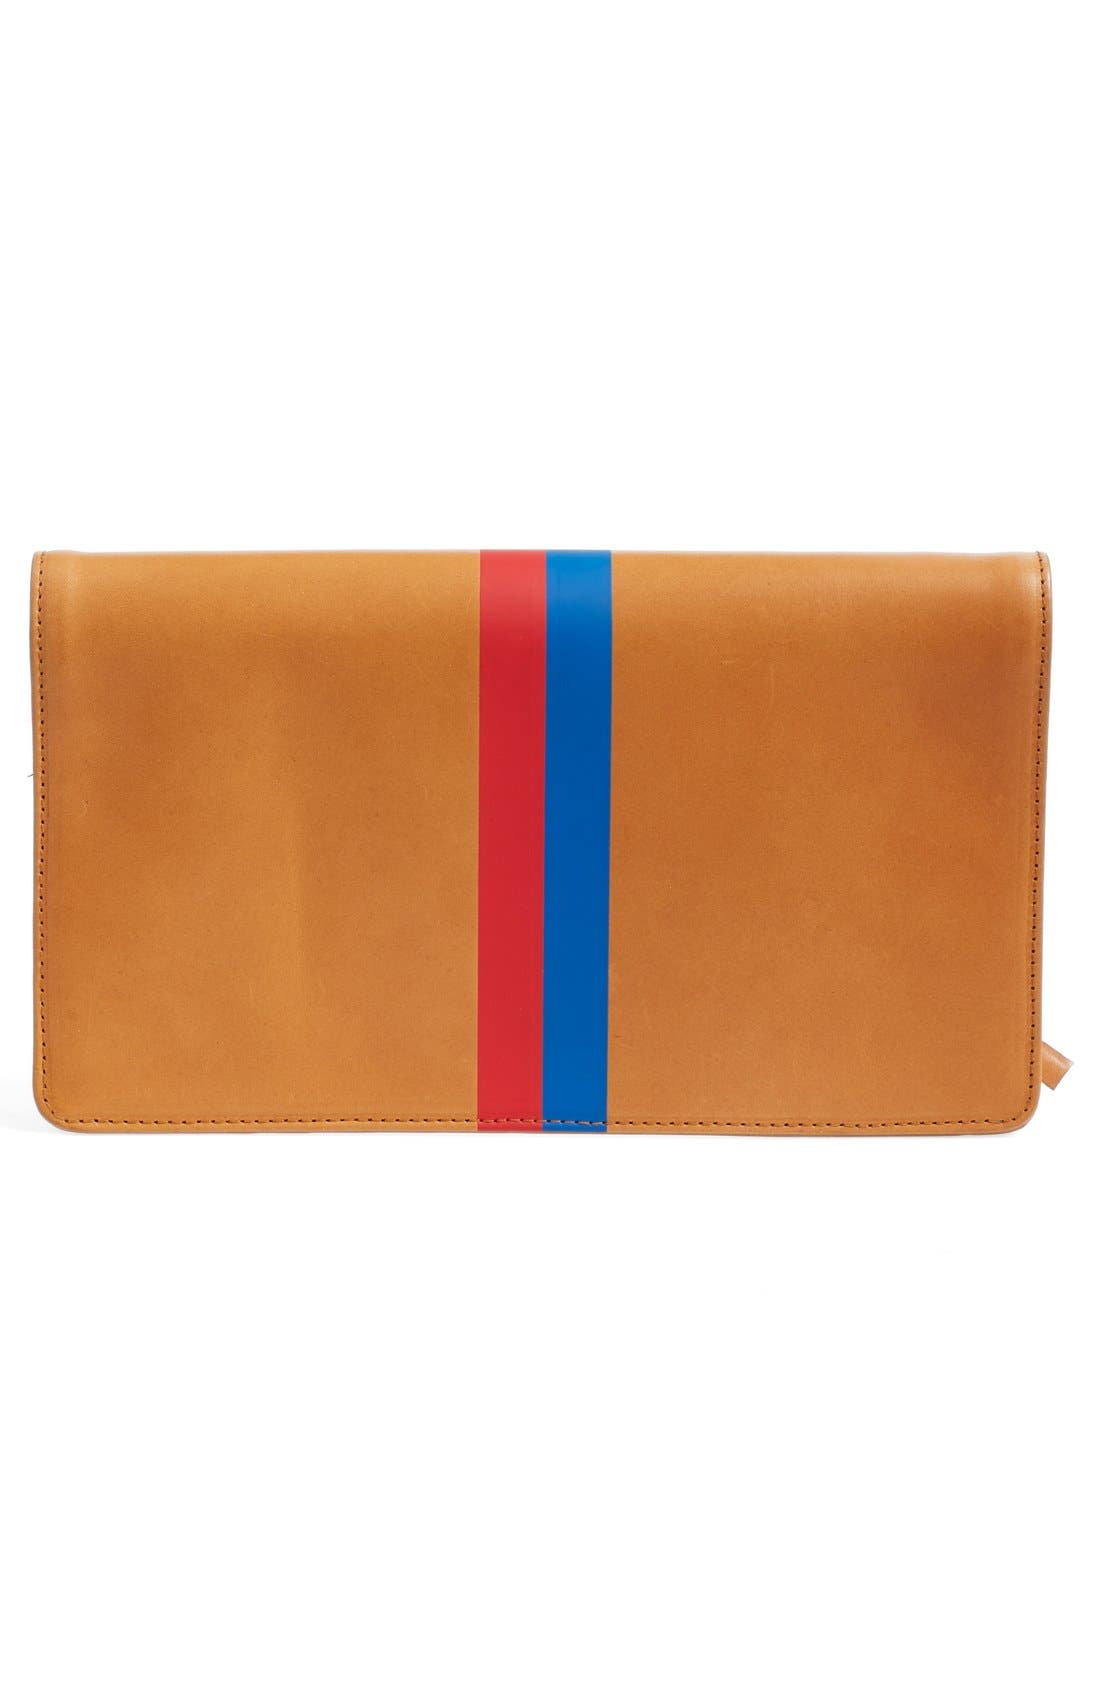 Alternate Image 3  - Clare V. 'Margot' Stripe Leather Foldover Clutch